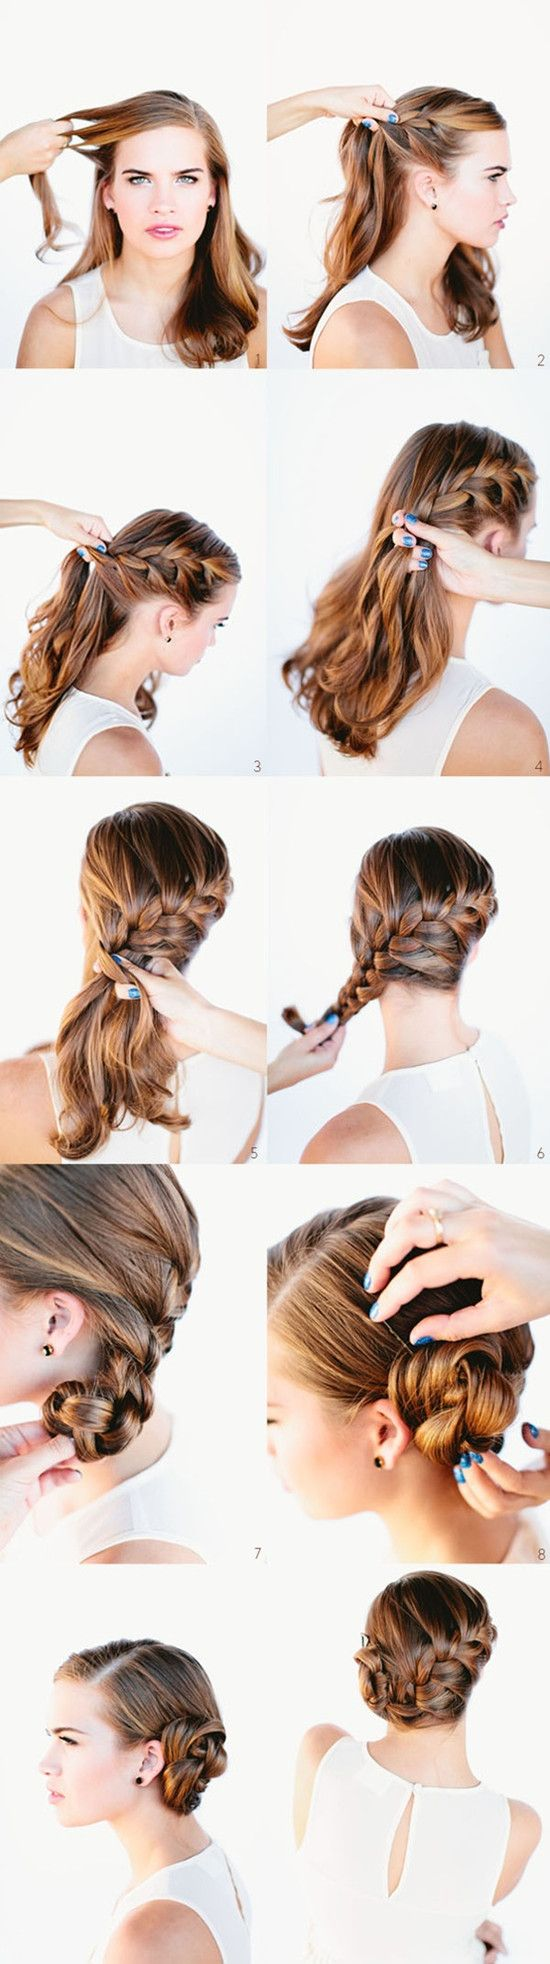 Real Best 6 Wedding Hairstyle Tutorial With 20 Inch Hair Extensions